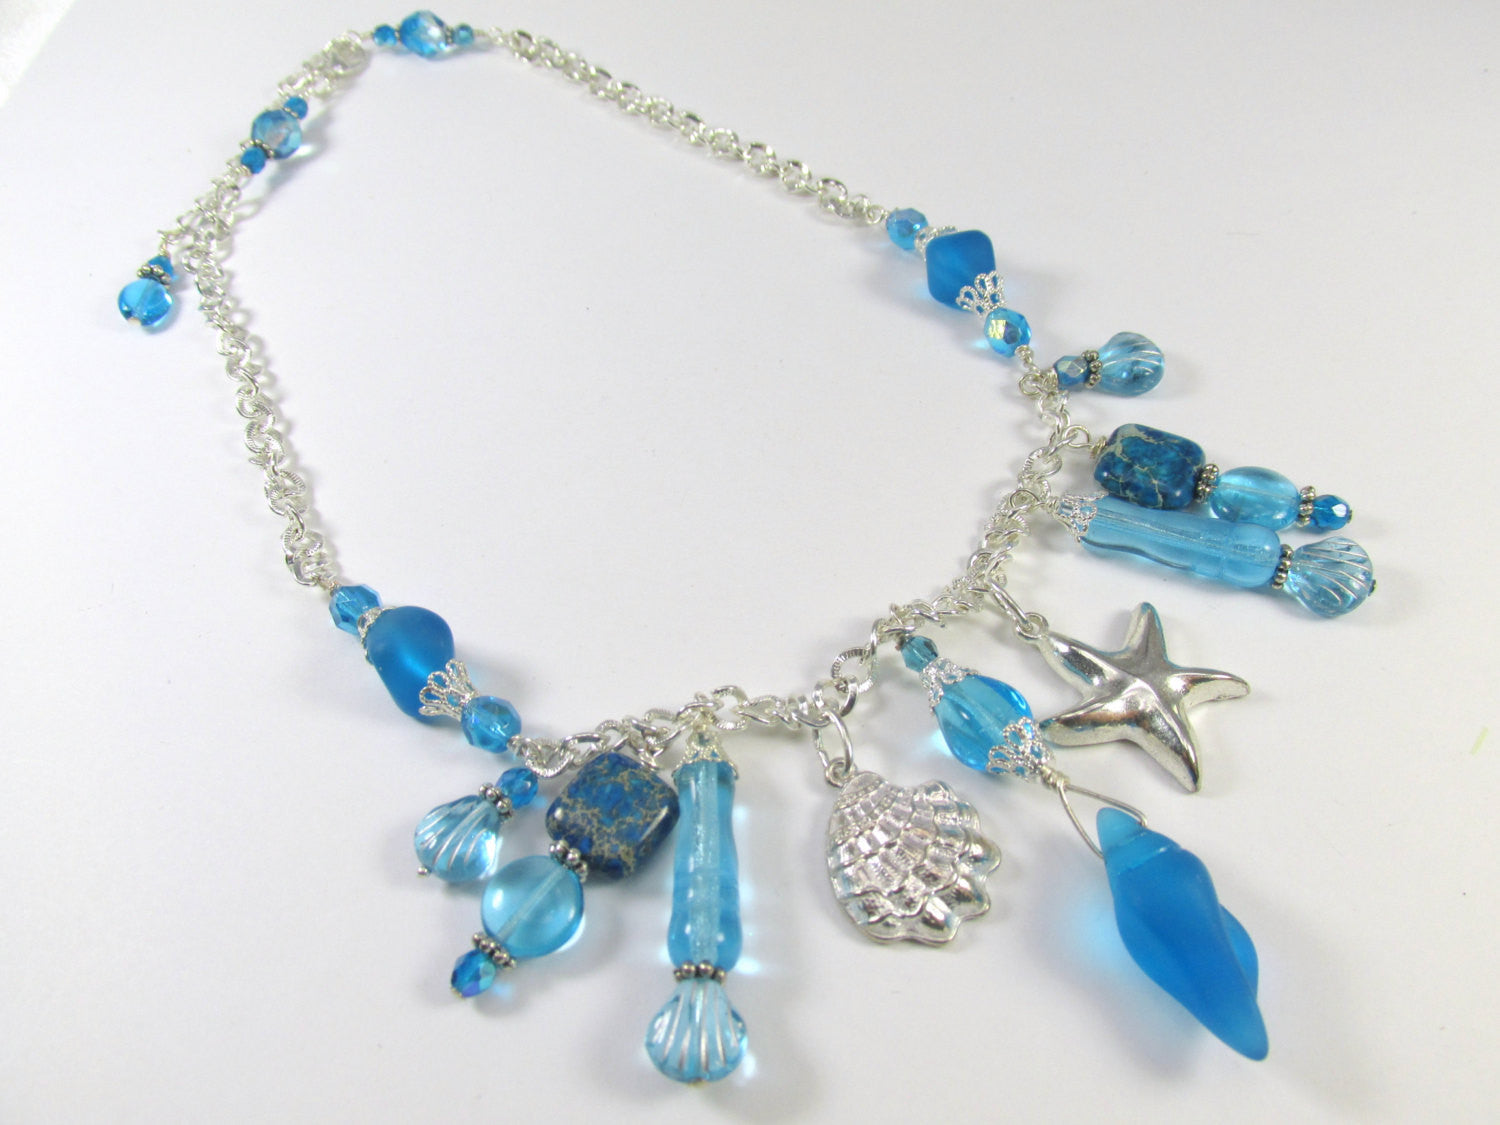 Turquoise Sea Glass and Blue Jasper Charmed Necklace - Odyssey Creations